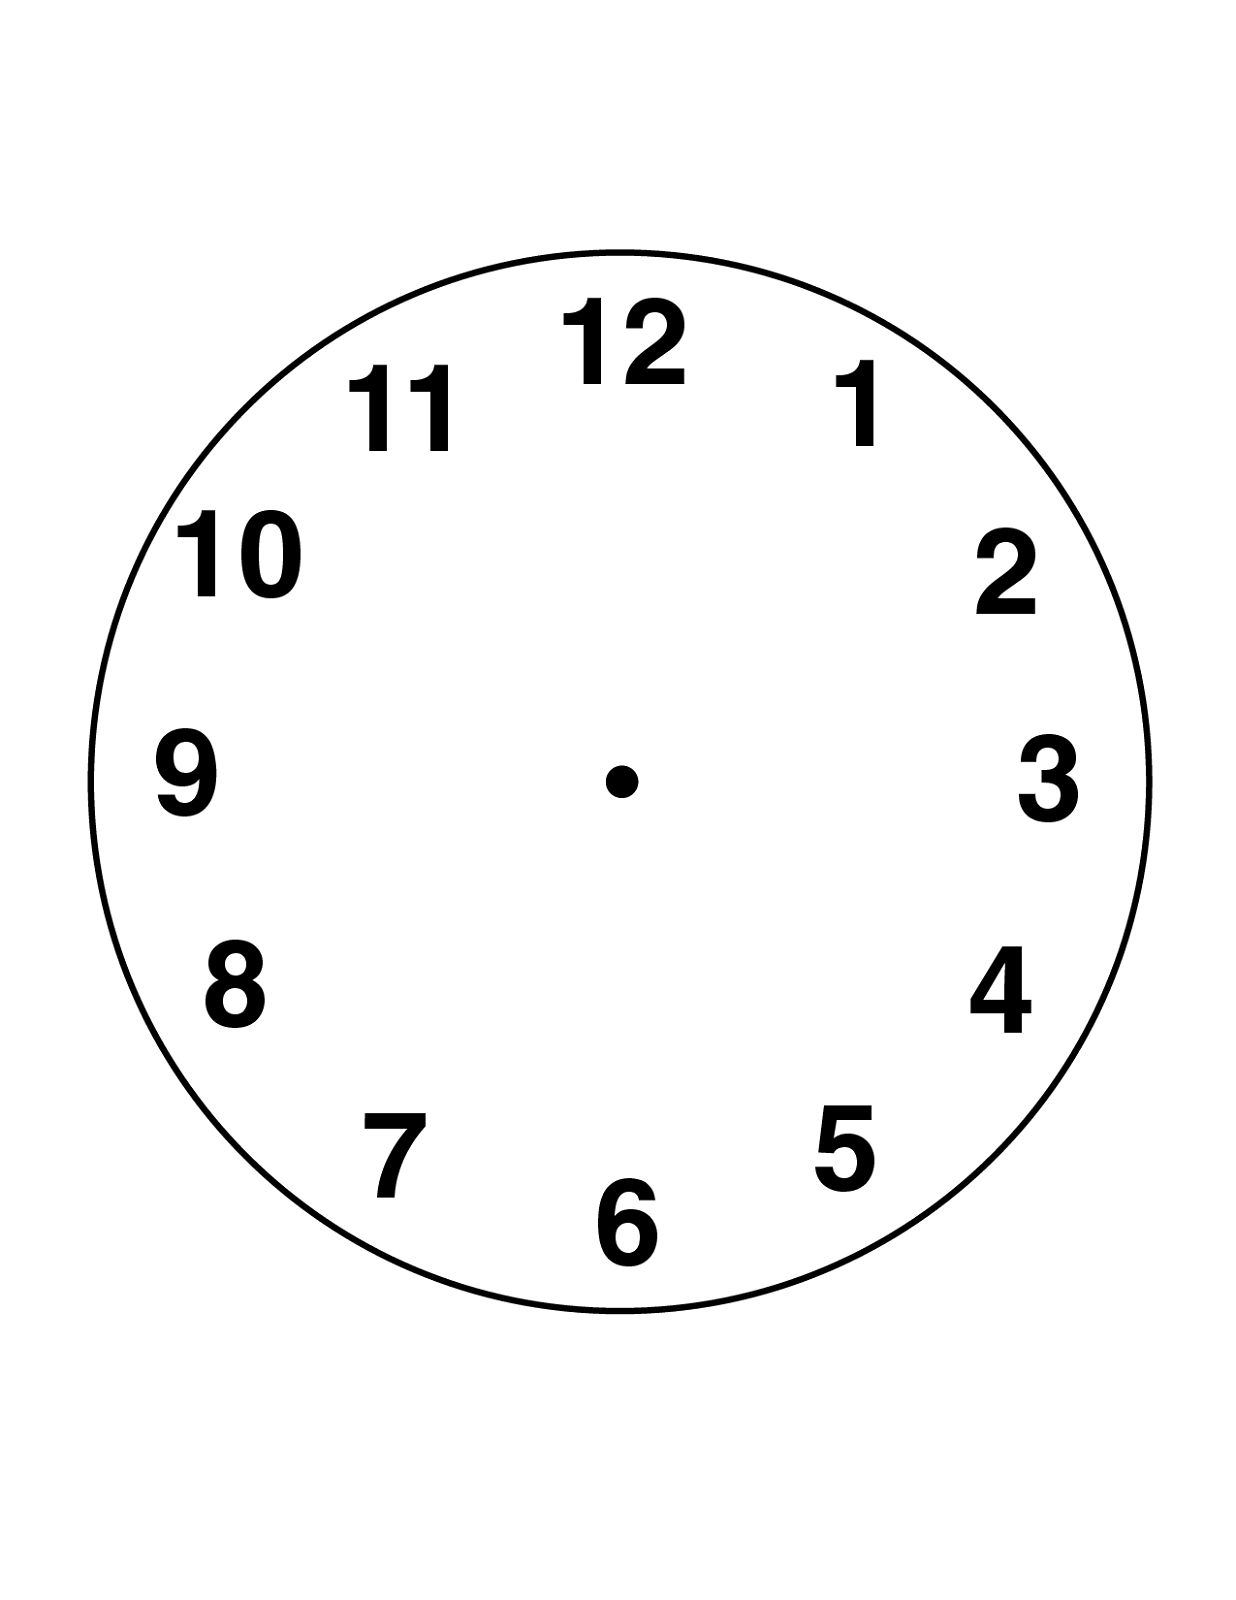 Blank Clock Faces For Exercises